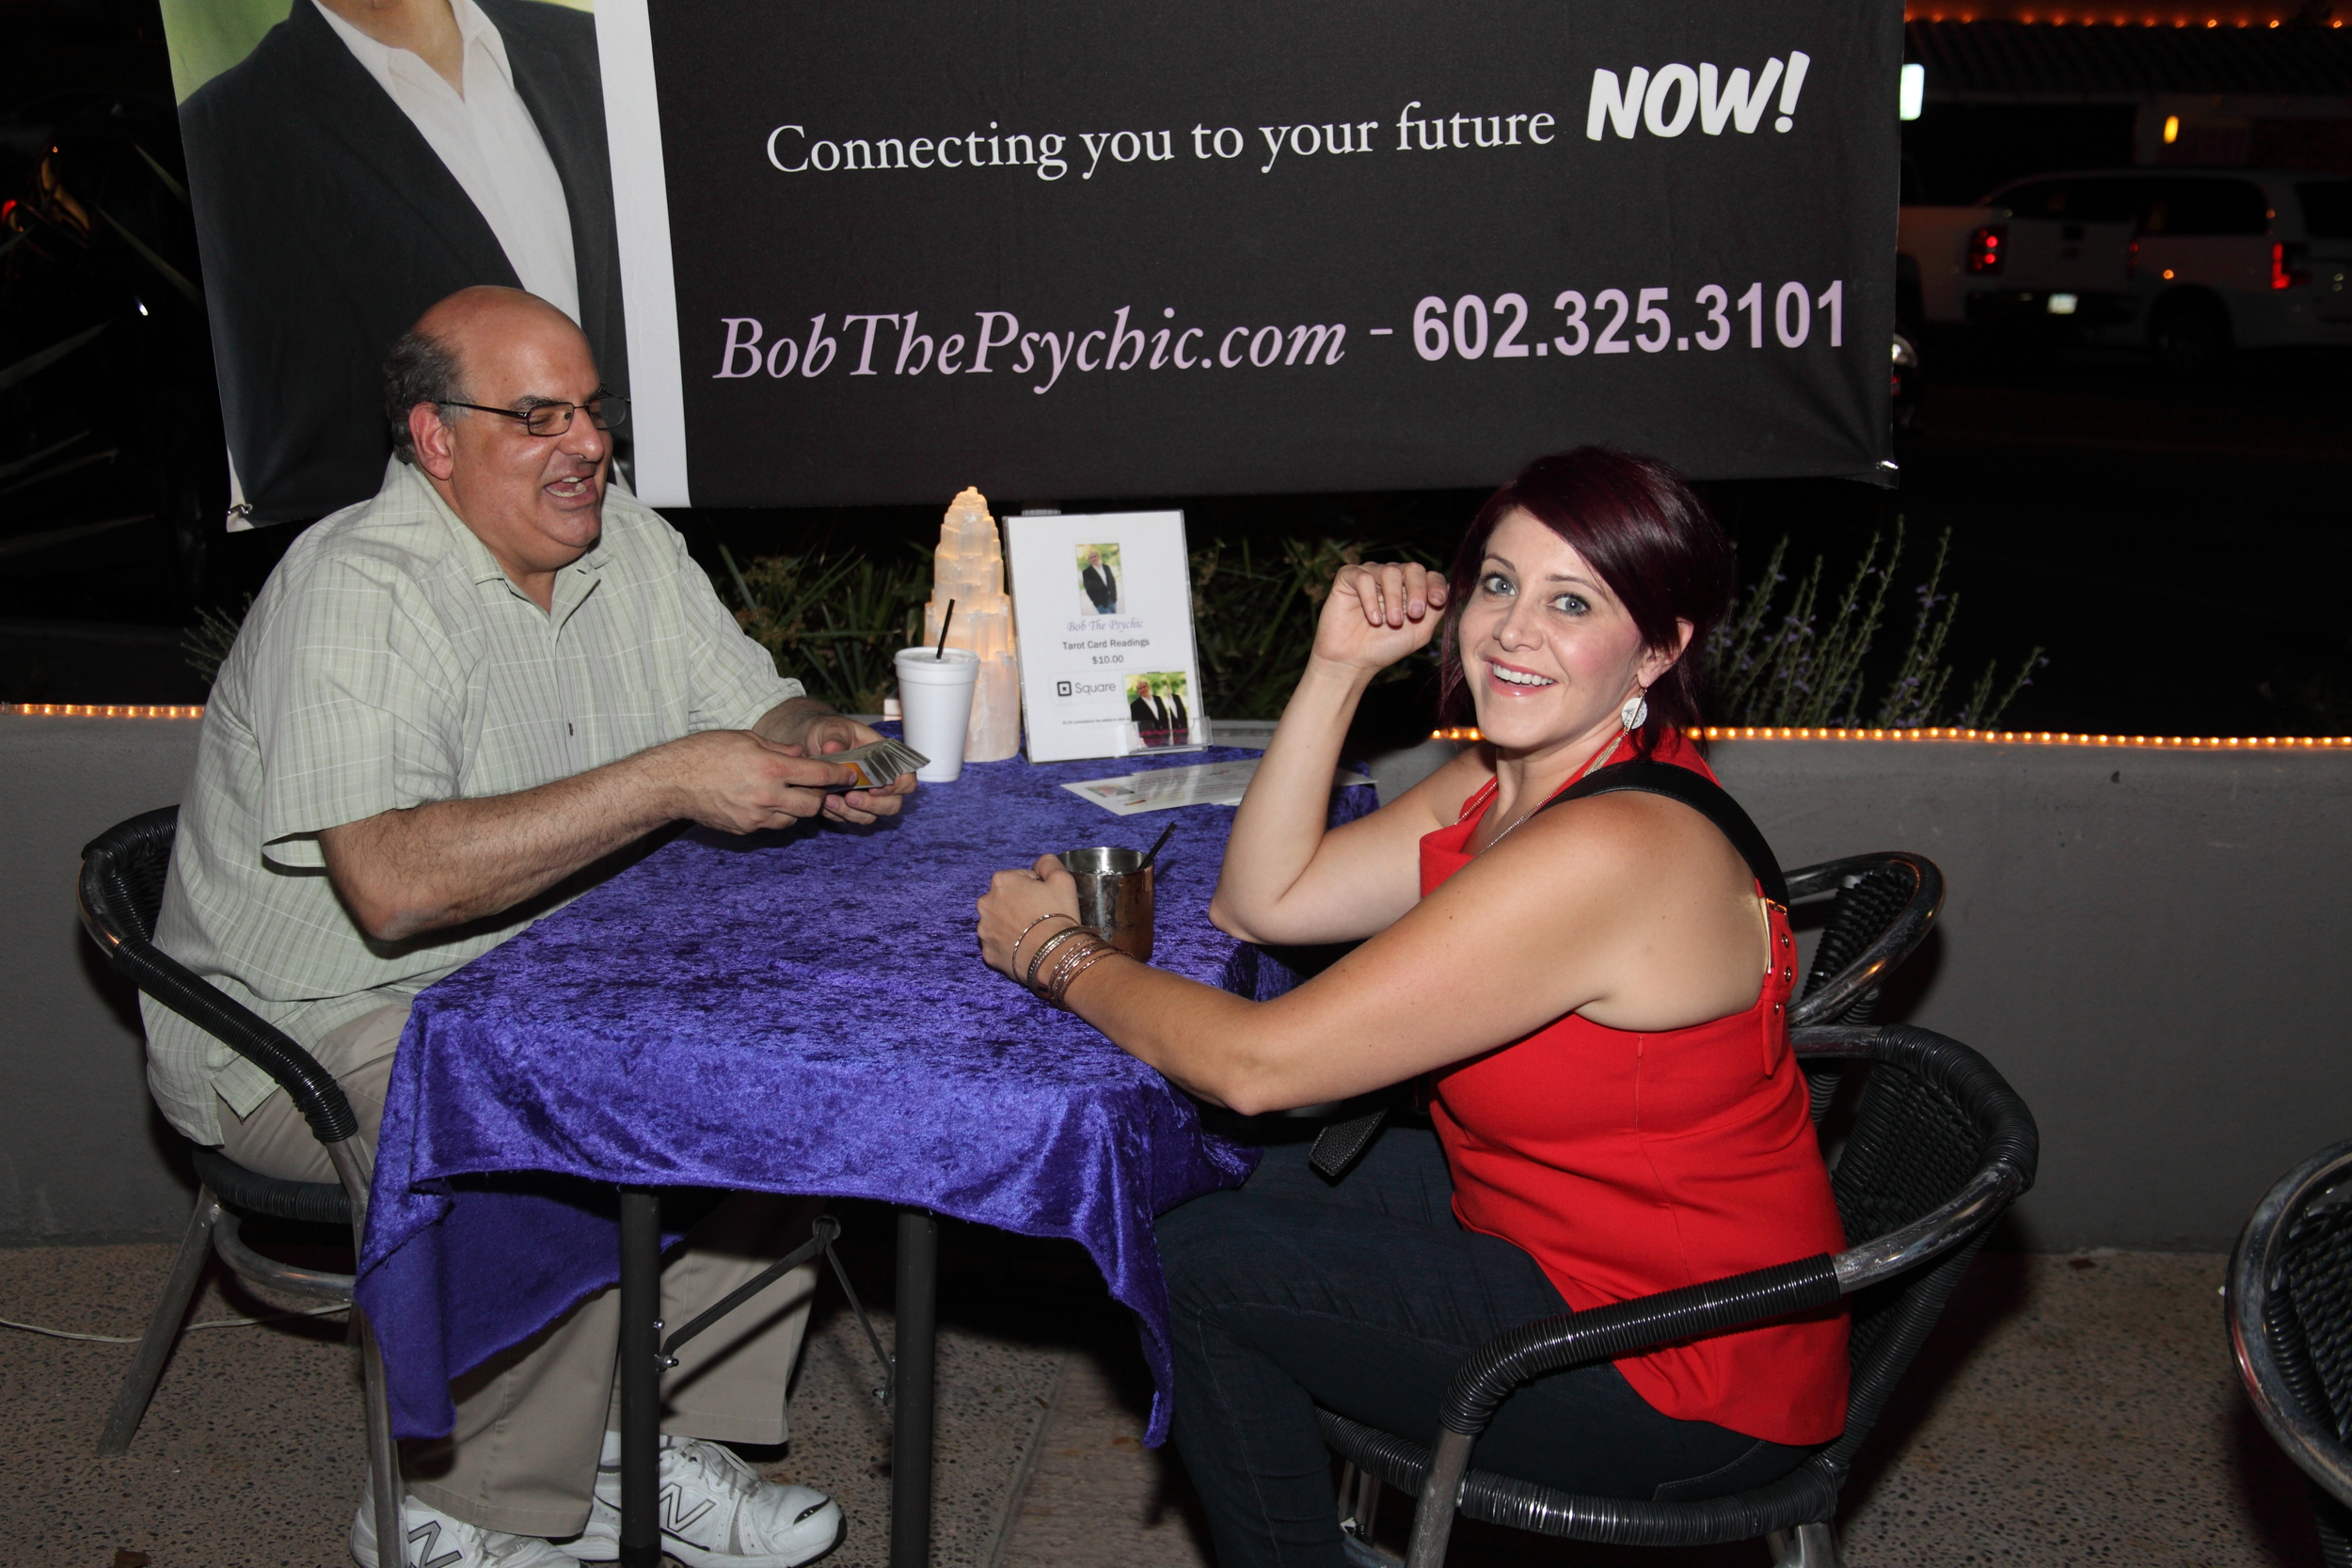 Bob the Psychic & Lindsay with All Done Up Salon